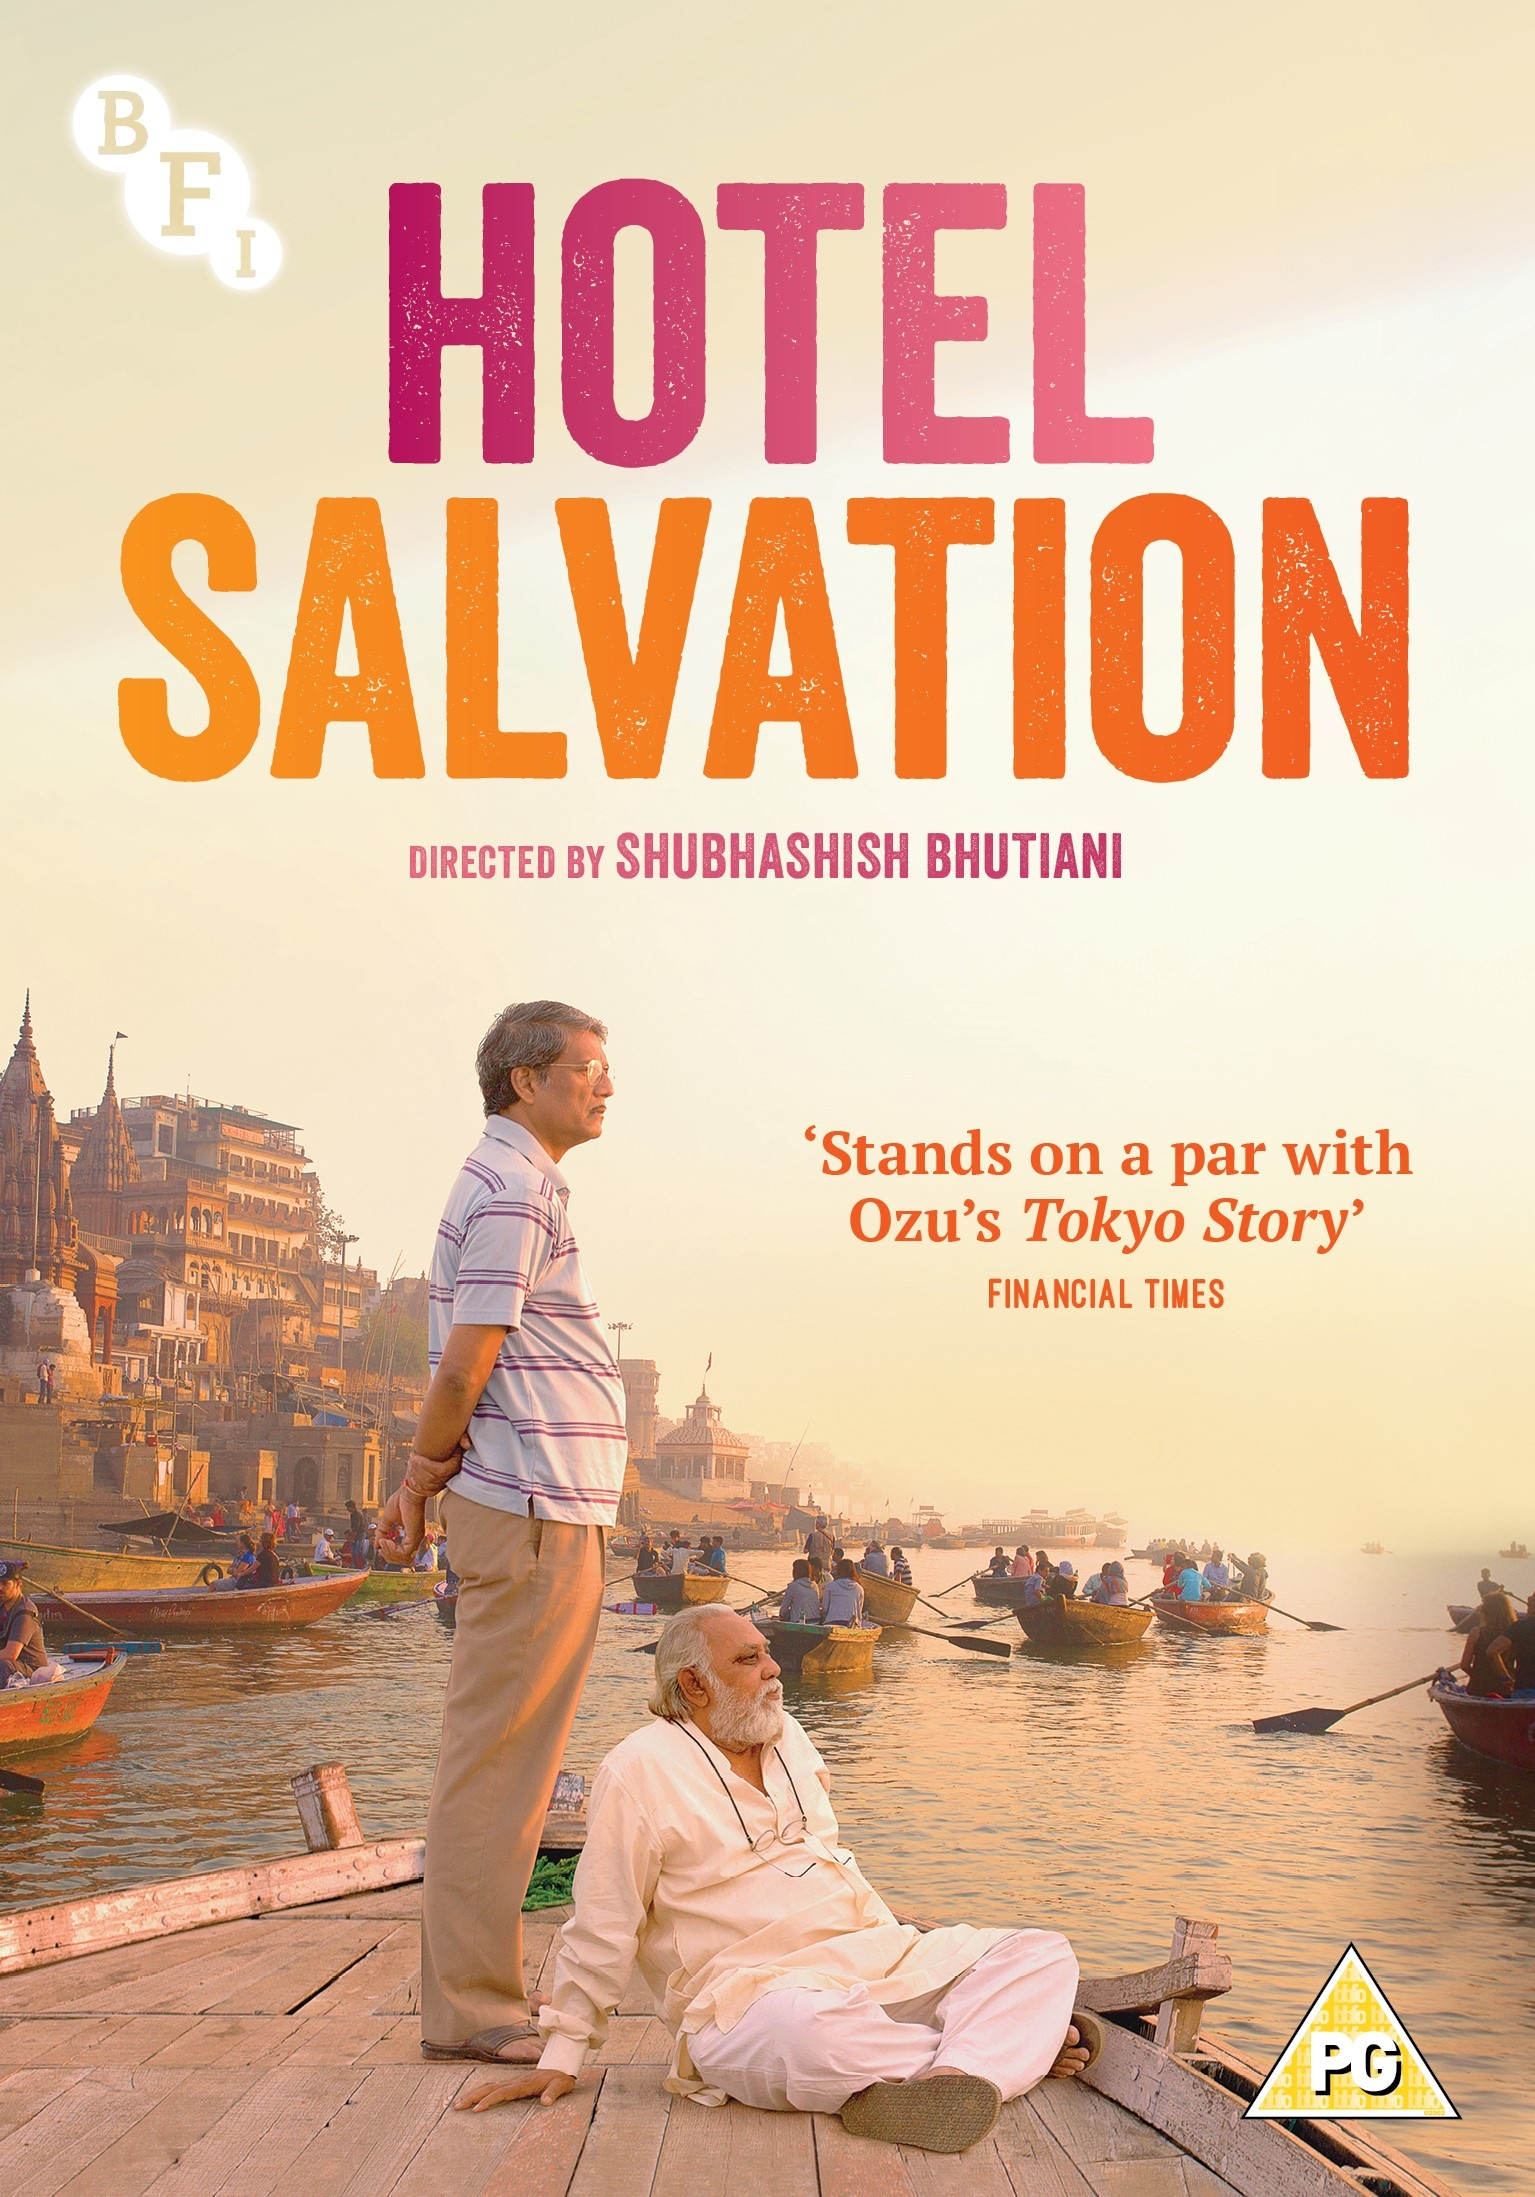 Buy PRE-ORDER Hotel Salvation (DVD)